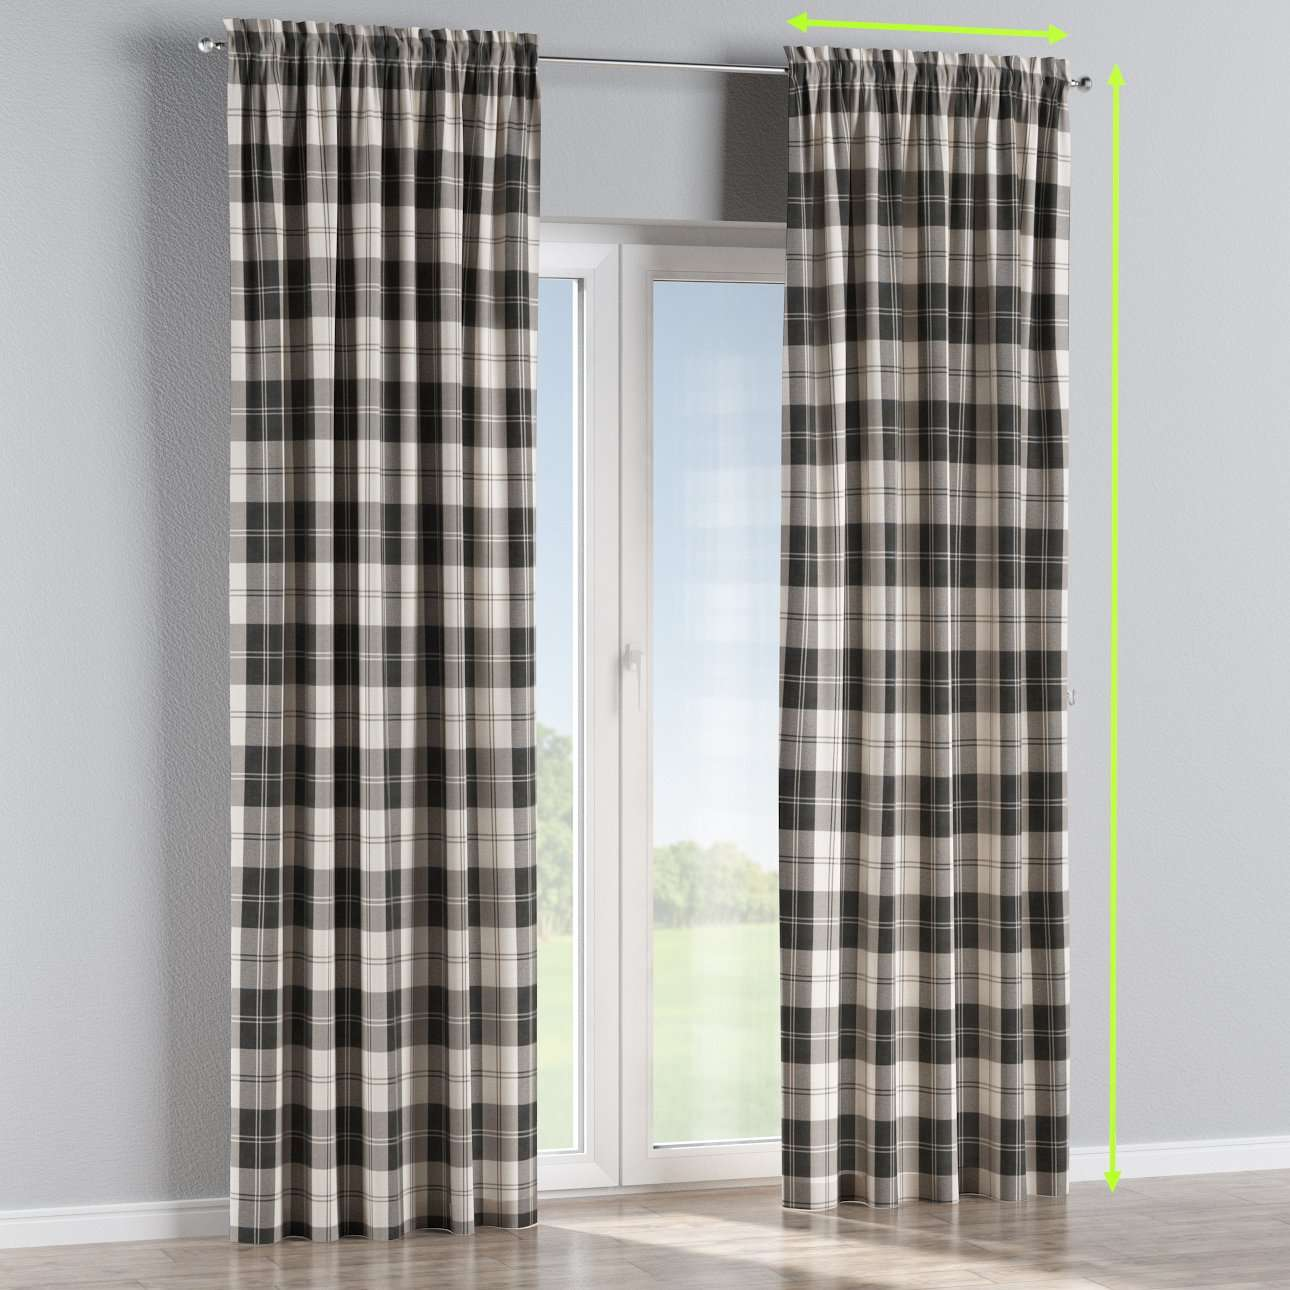 Slot and frill curtains in collection Edinburgh , fabric: 115-74